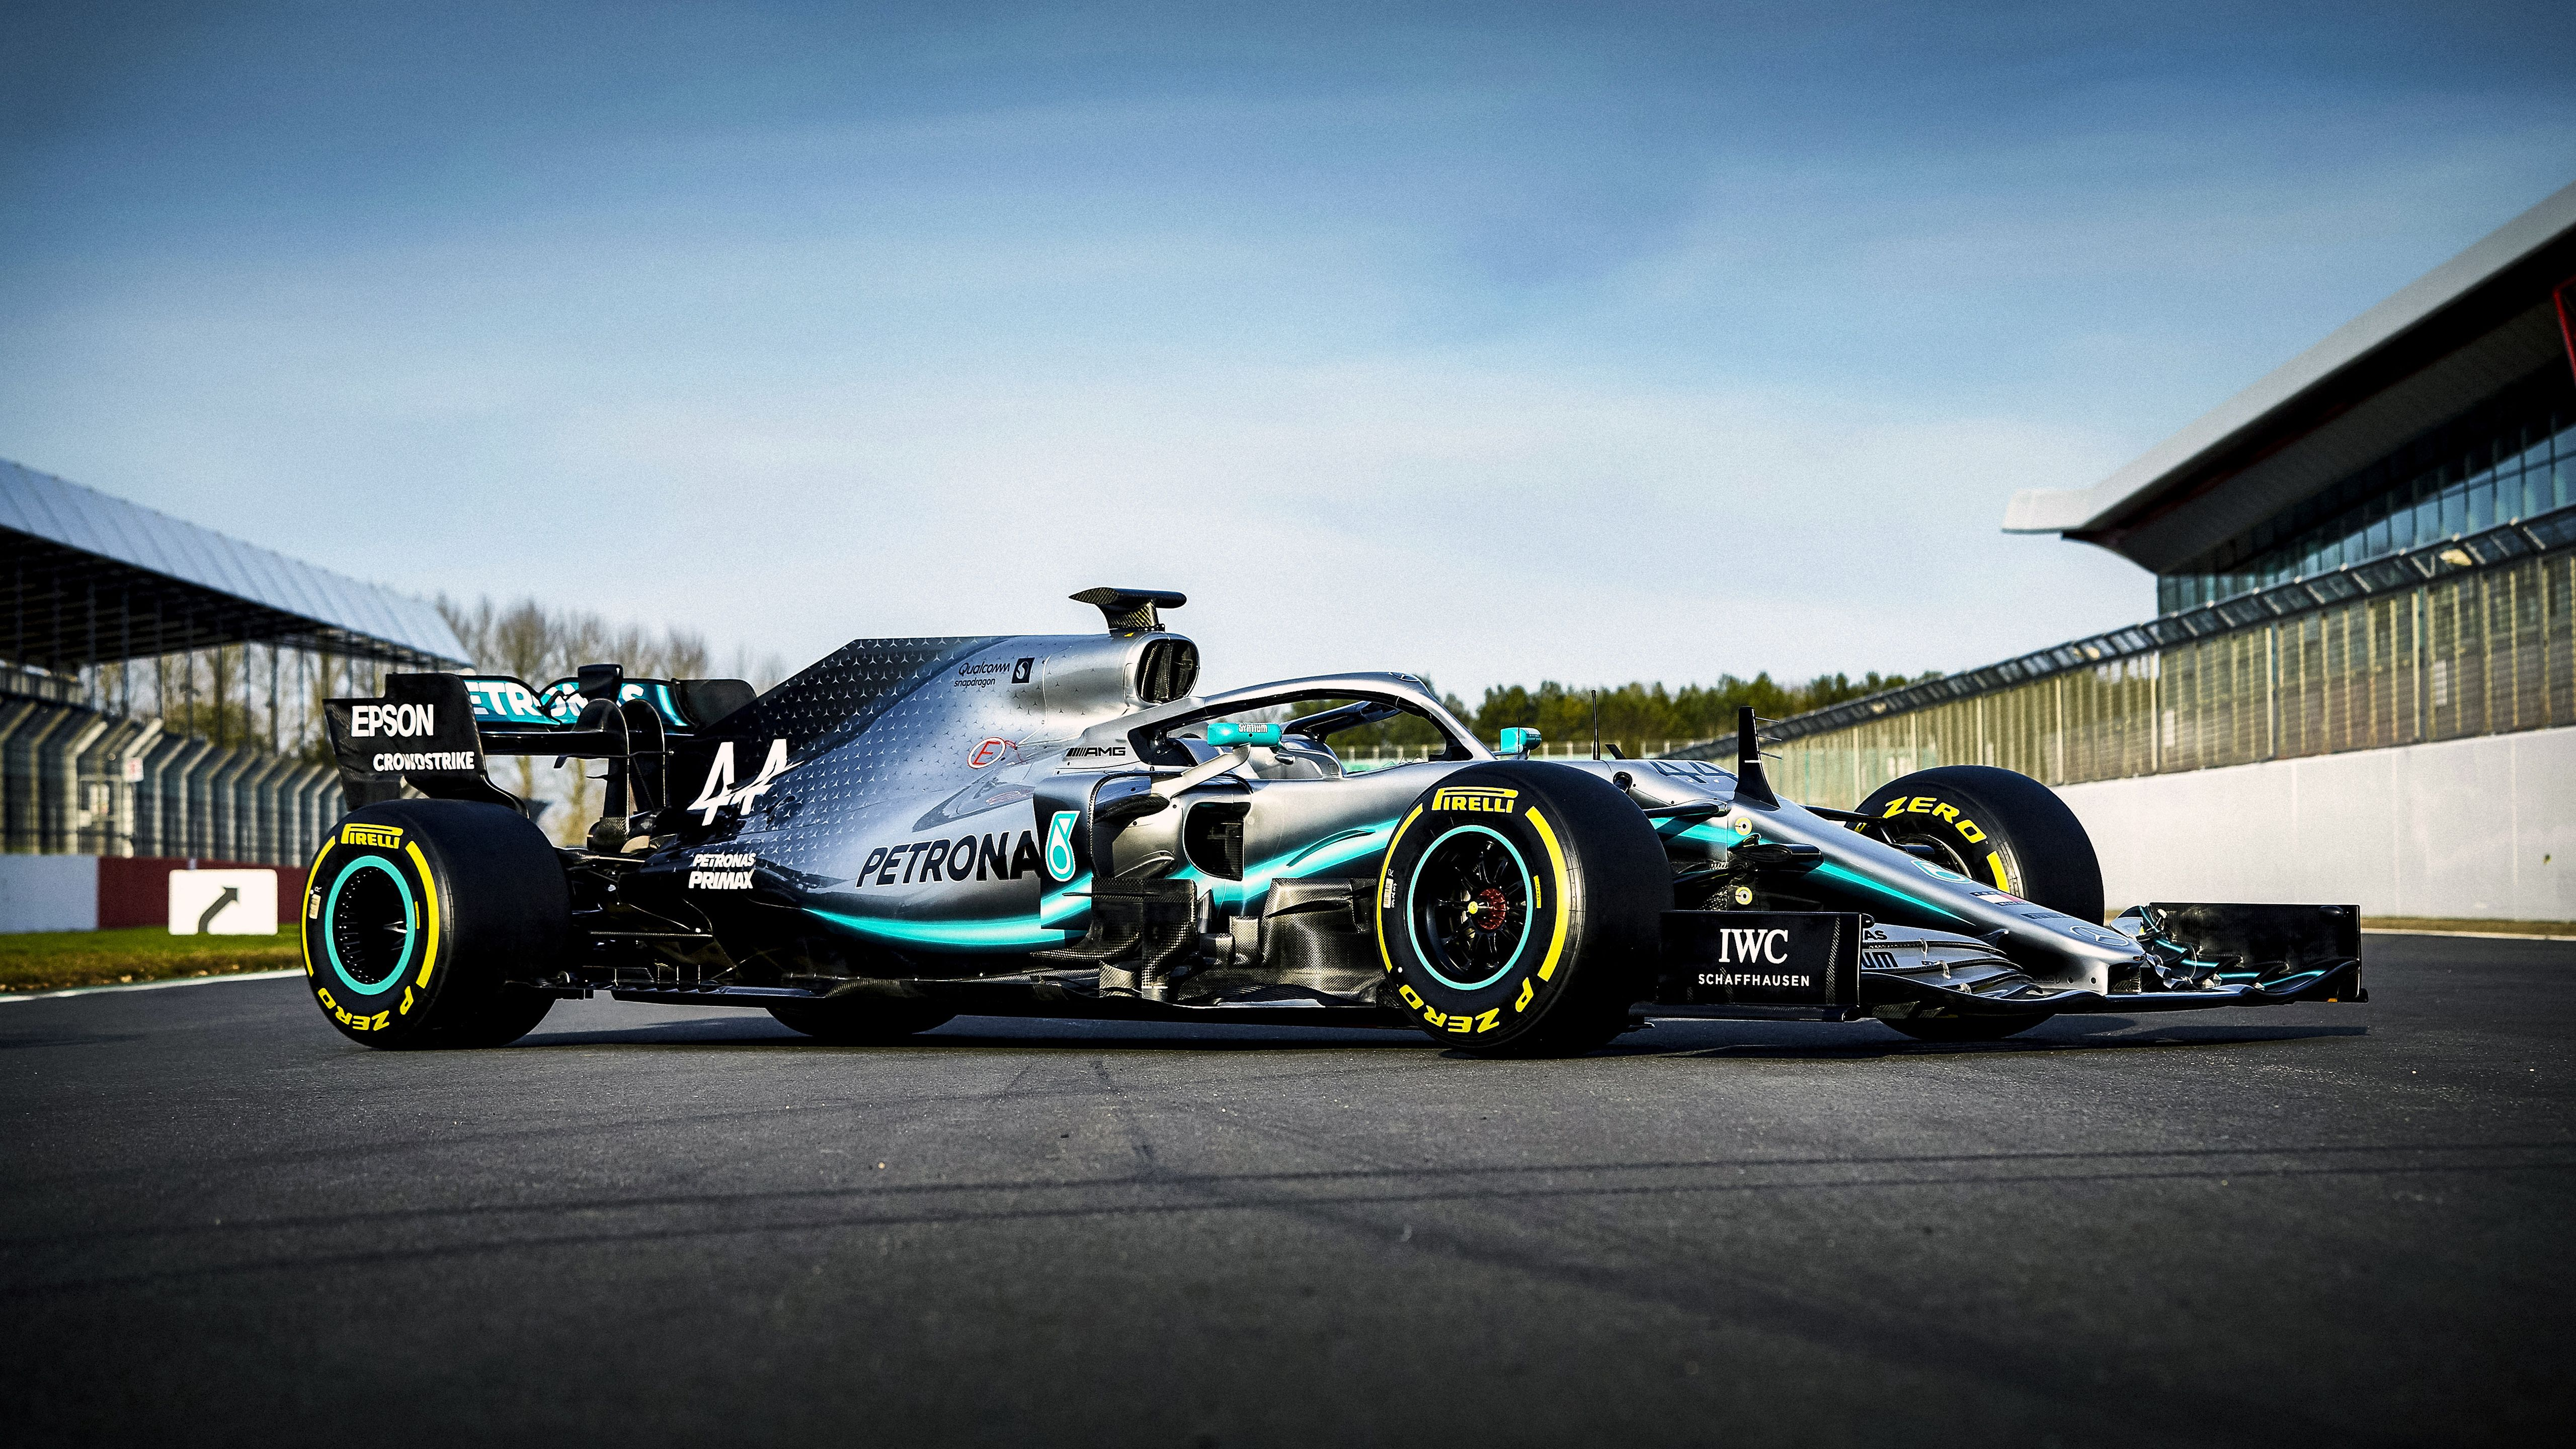 F1 2019 Wallpapers Top Free F1 2019 Backgrounds Wallpaperaccess Images, Photos, Reviews